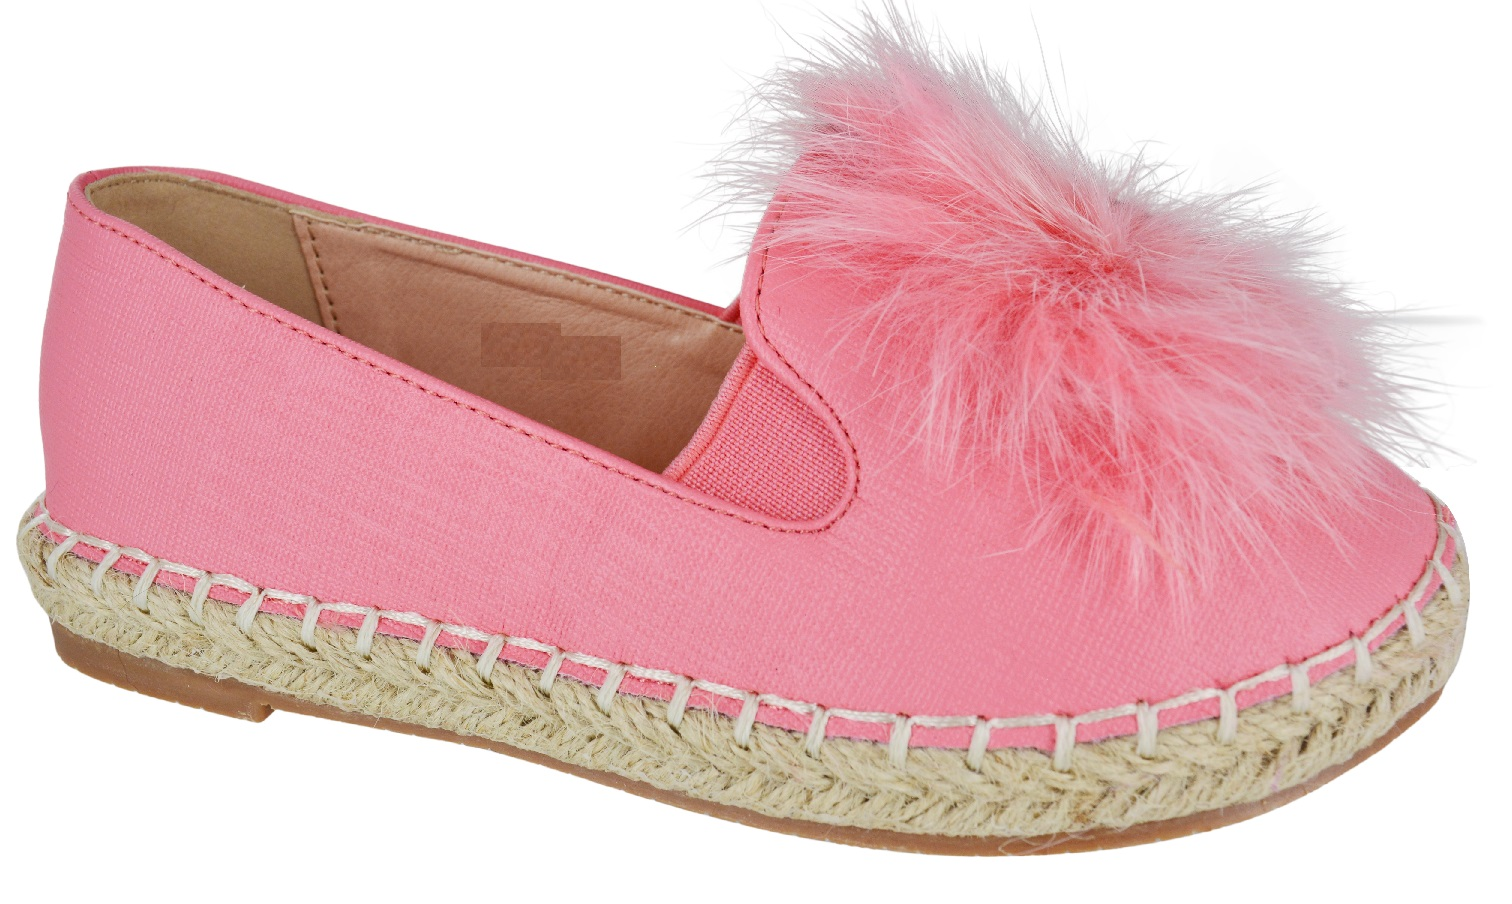 KIDS GIRLS FLAT ESPADRILLES PLATFORM POM POM FUR PUMPS ...